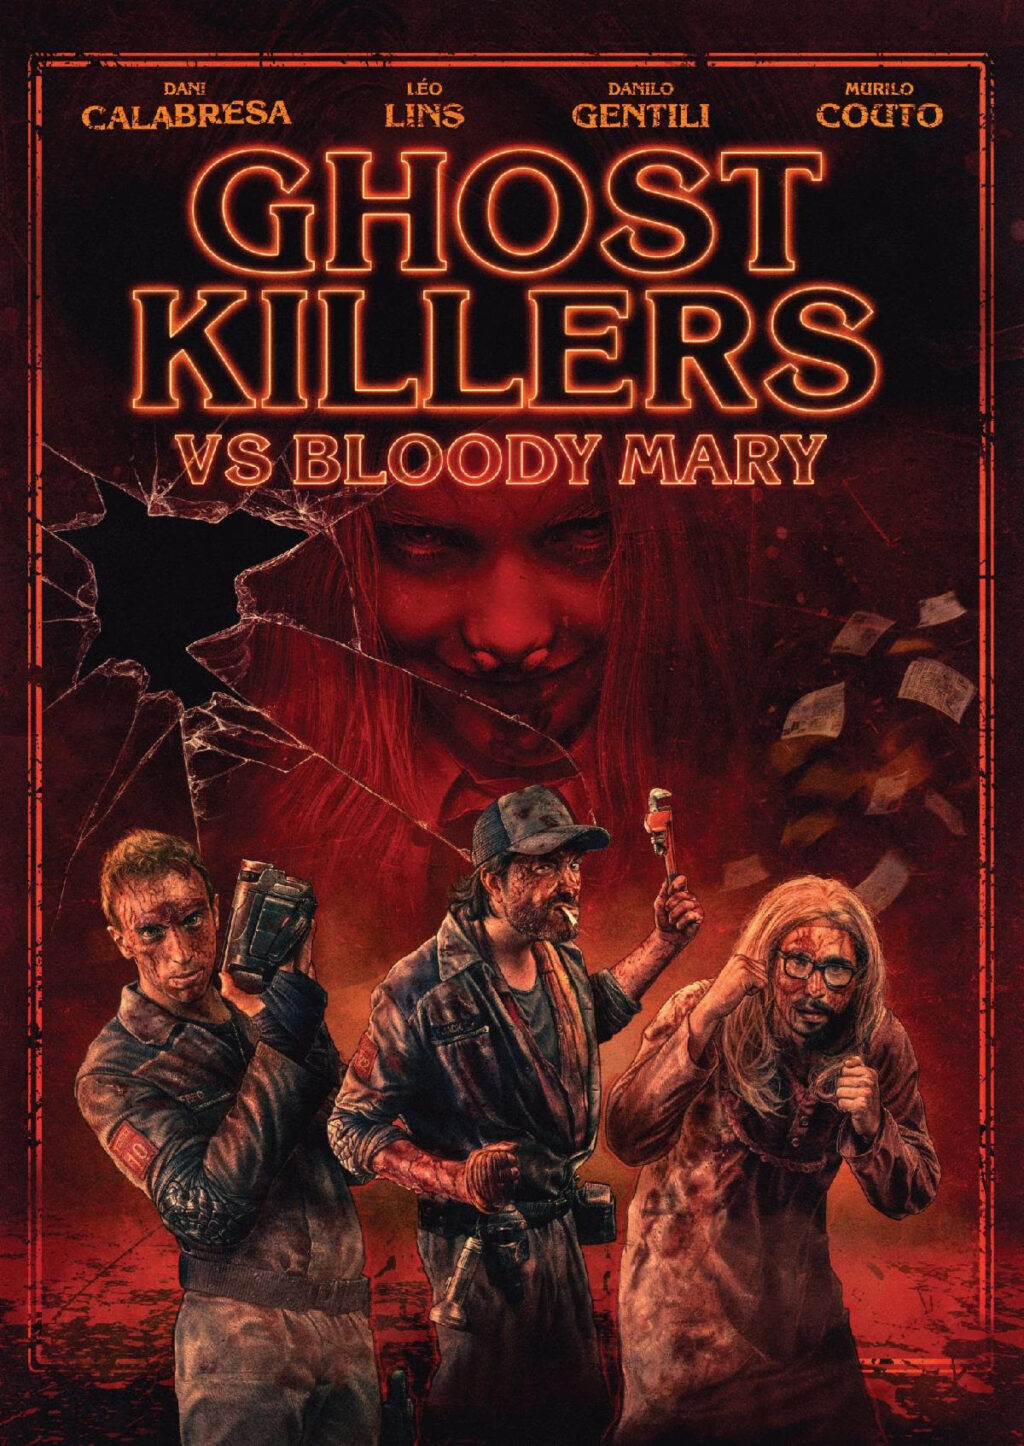 Ghost Killers vs Bloody Mary Poster 1024x1446 - Trailer: Brutal Brazilian Horror-Comedy GHOST KILLERS VS BLOODY MARY